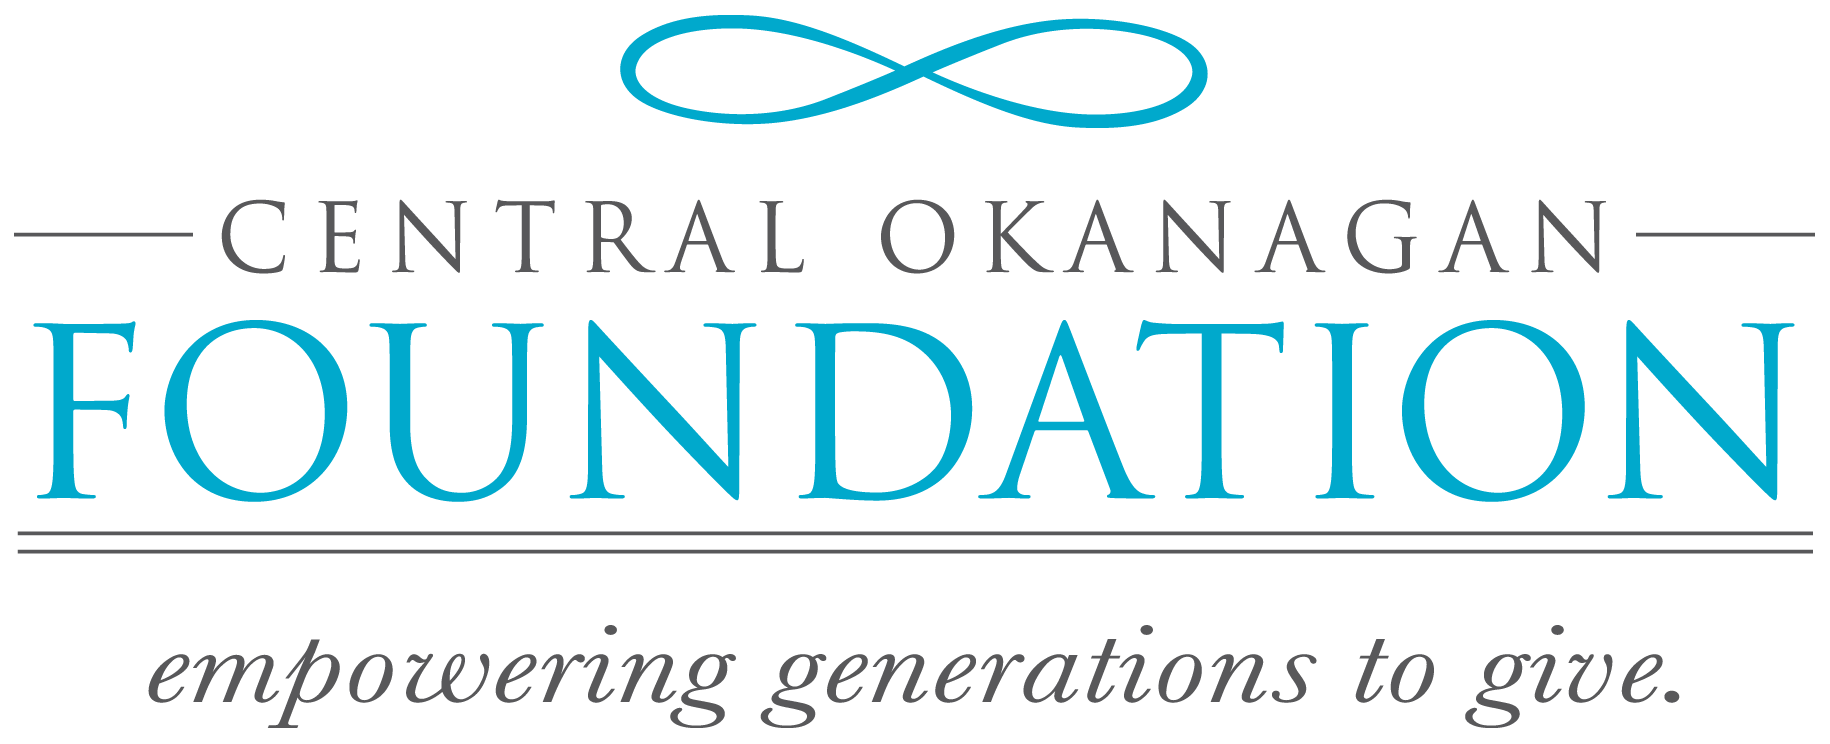 """""""Central Okanagan Foundation - empowering generations to give."""" logotype"""